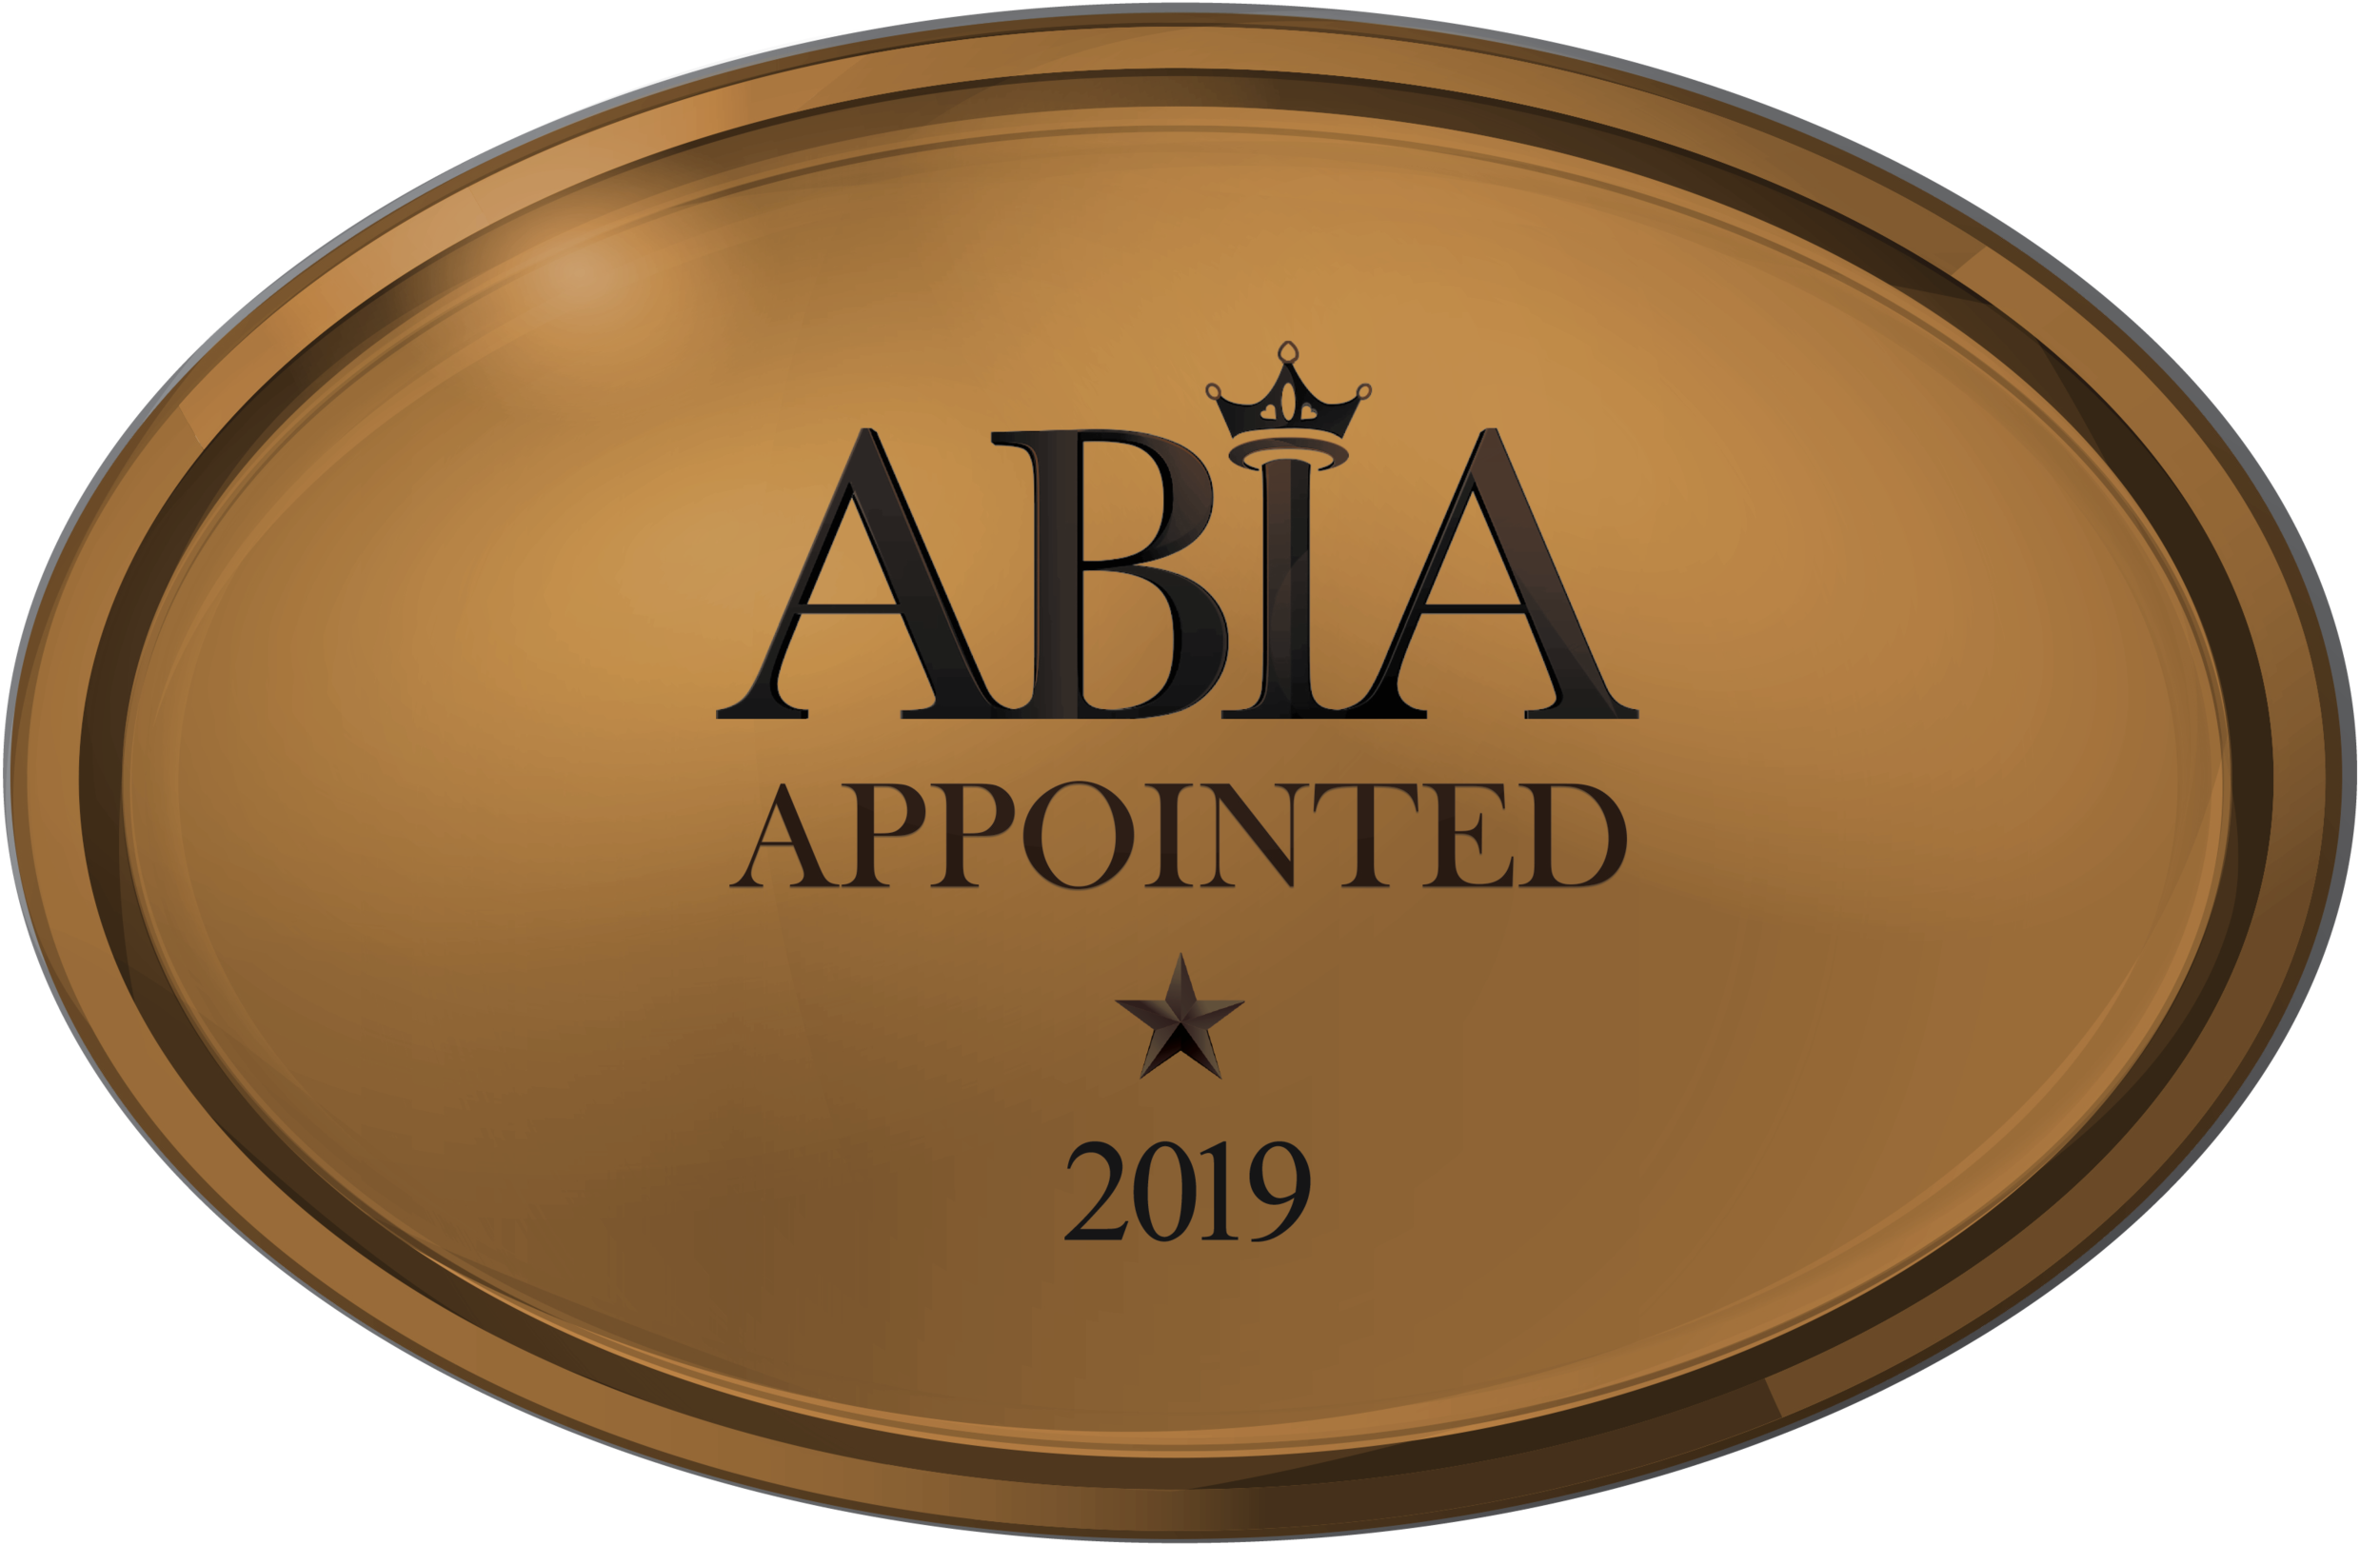 abia-appointed-member-2019-29.png